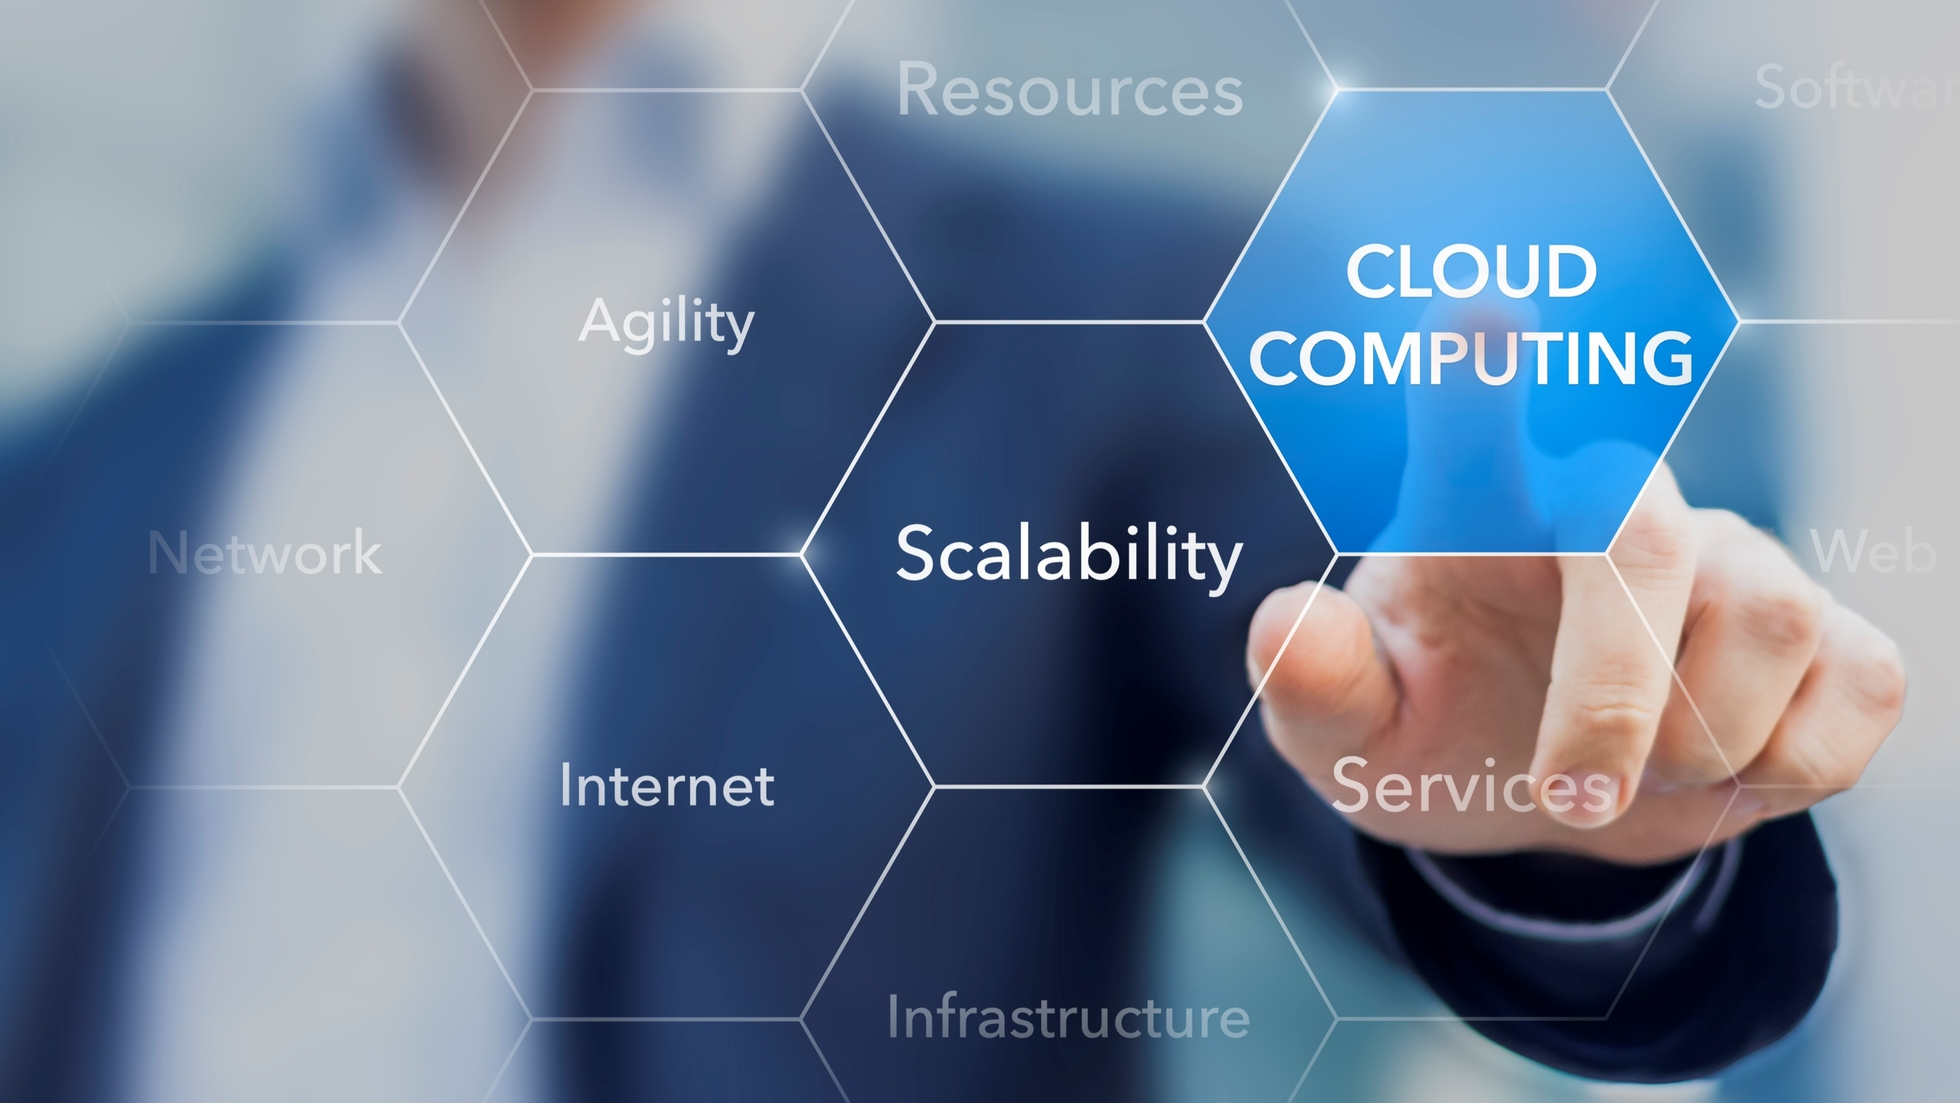 Consultant-promoting-cloud-computing-resources-and-services